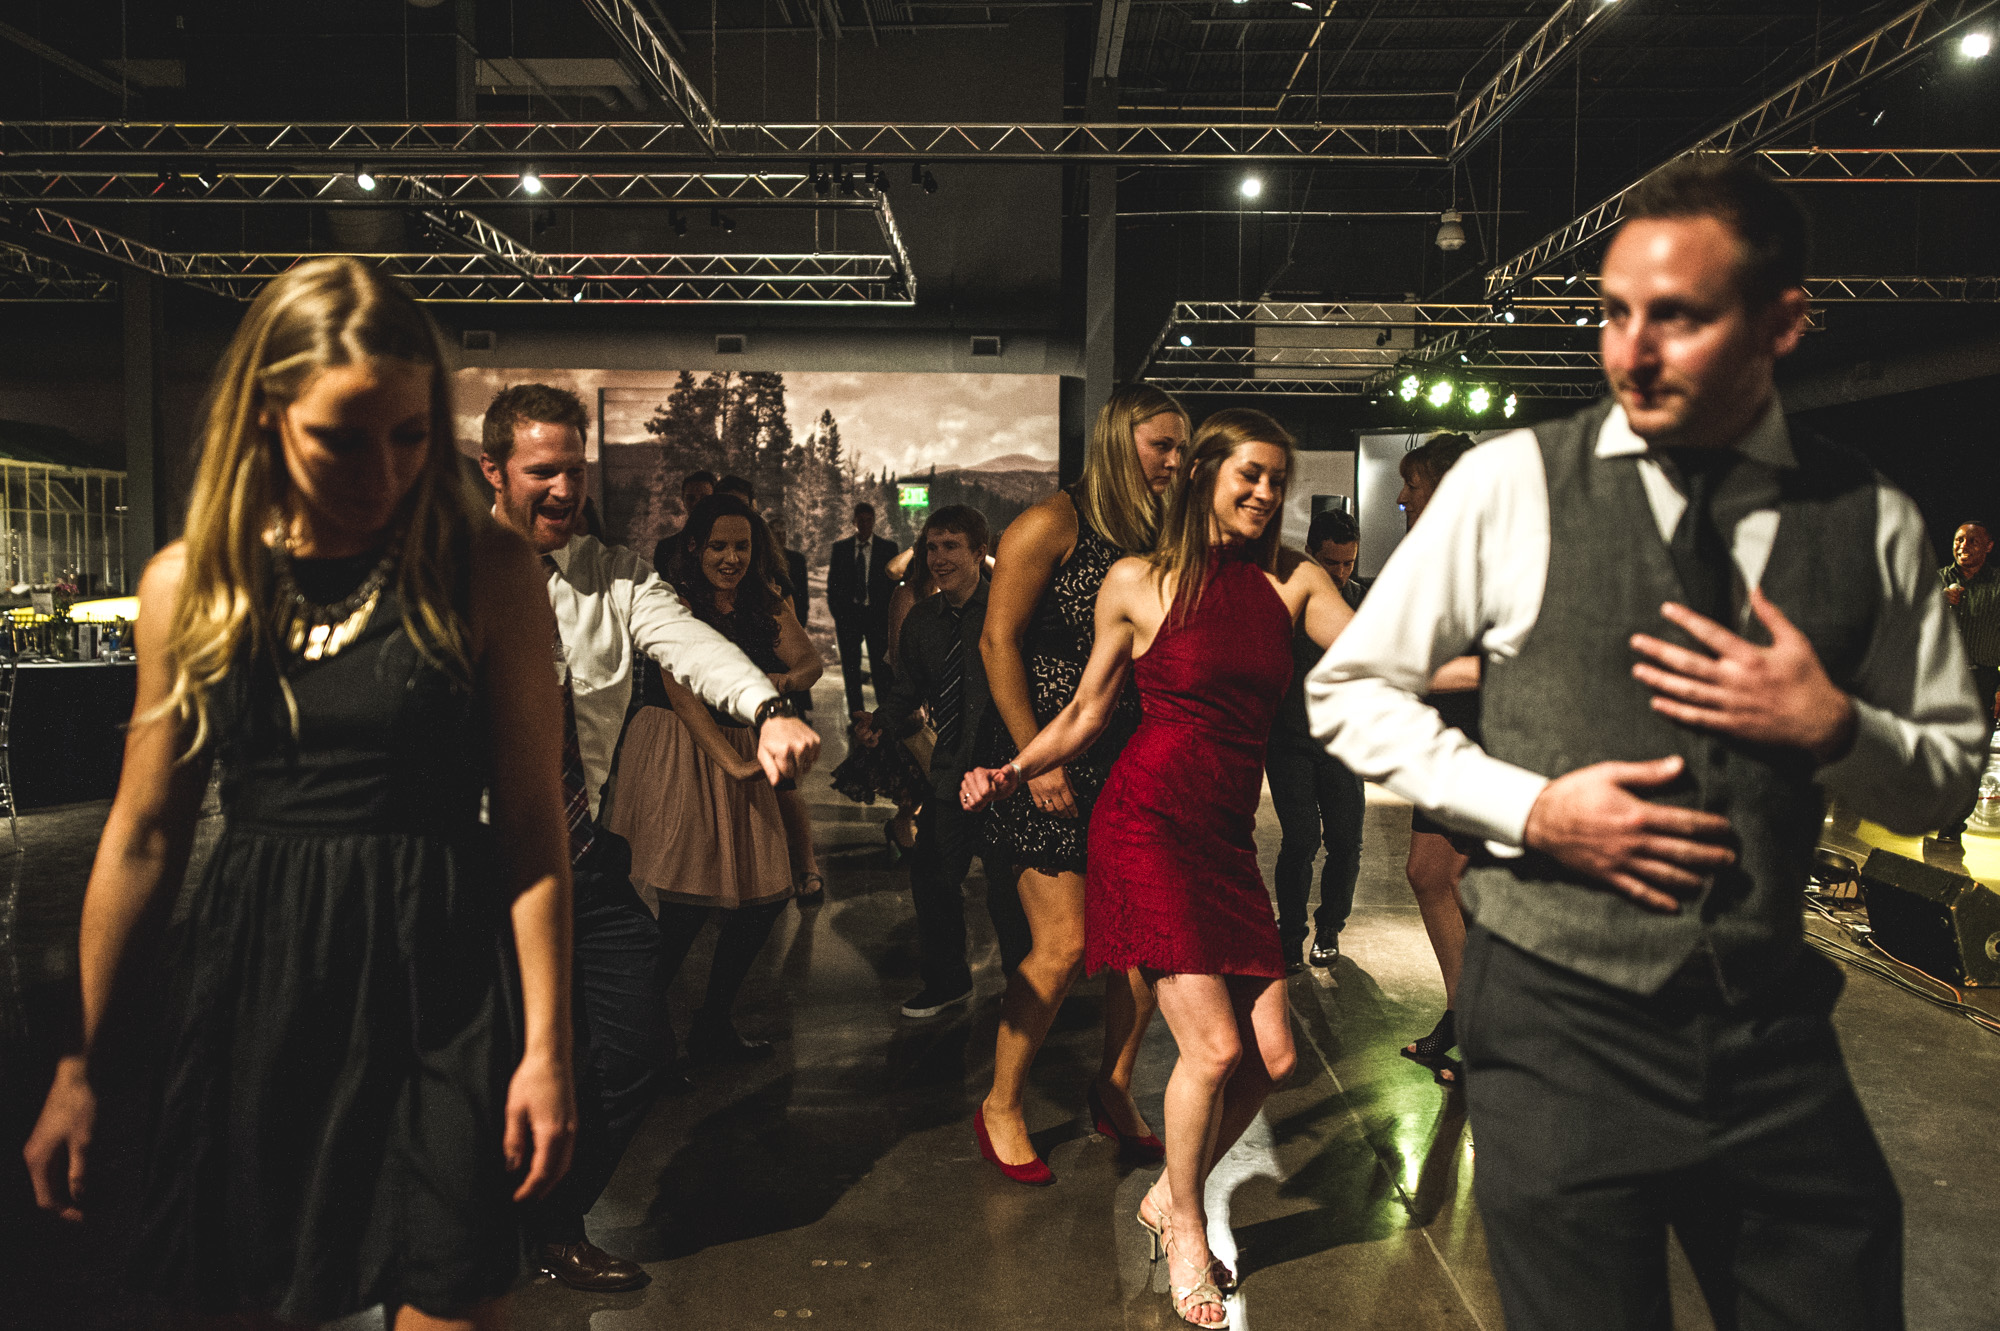 A group of guests at the Autism Society Winter Fundraiser at the Vehicle Vault do a line dance to the music of the Wash Park Band. Photo in color.